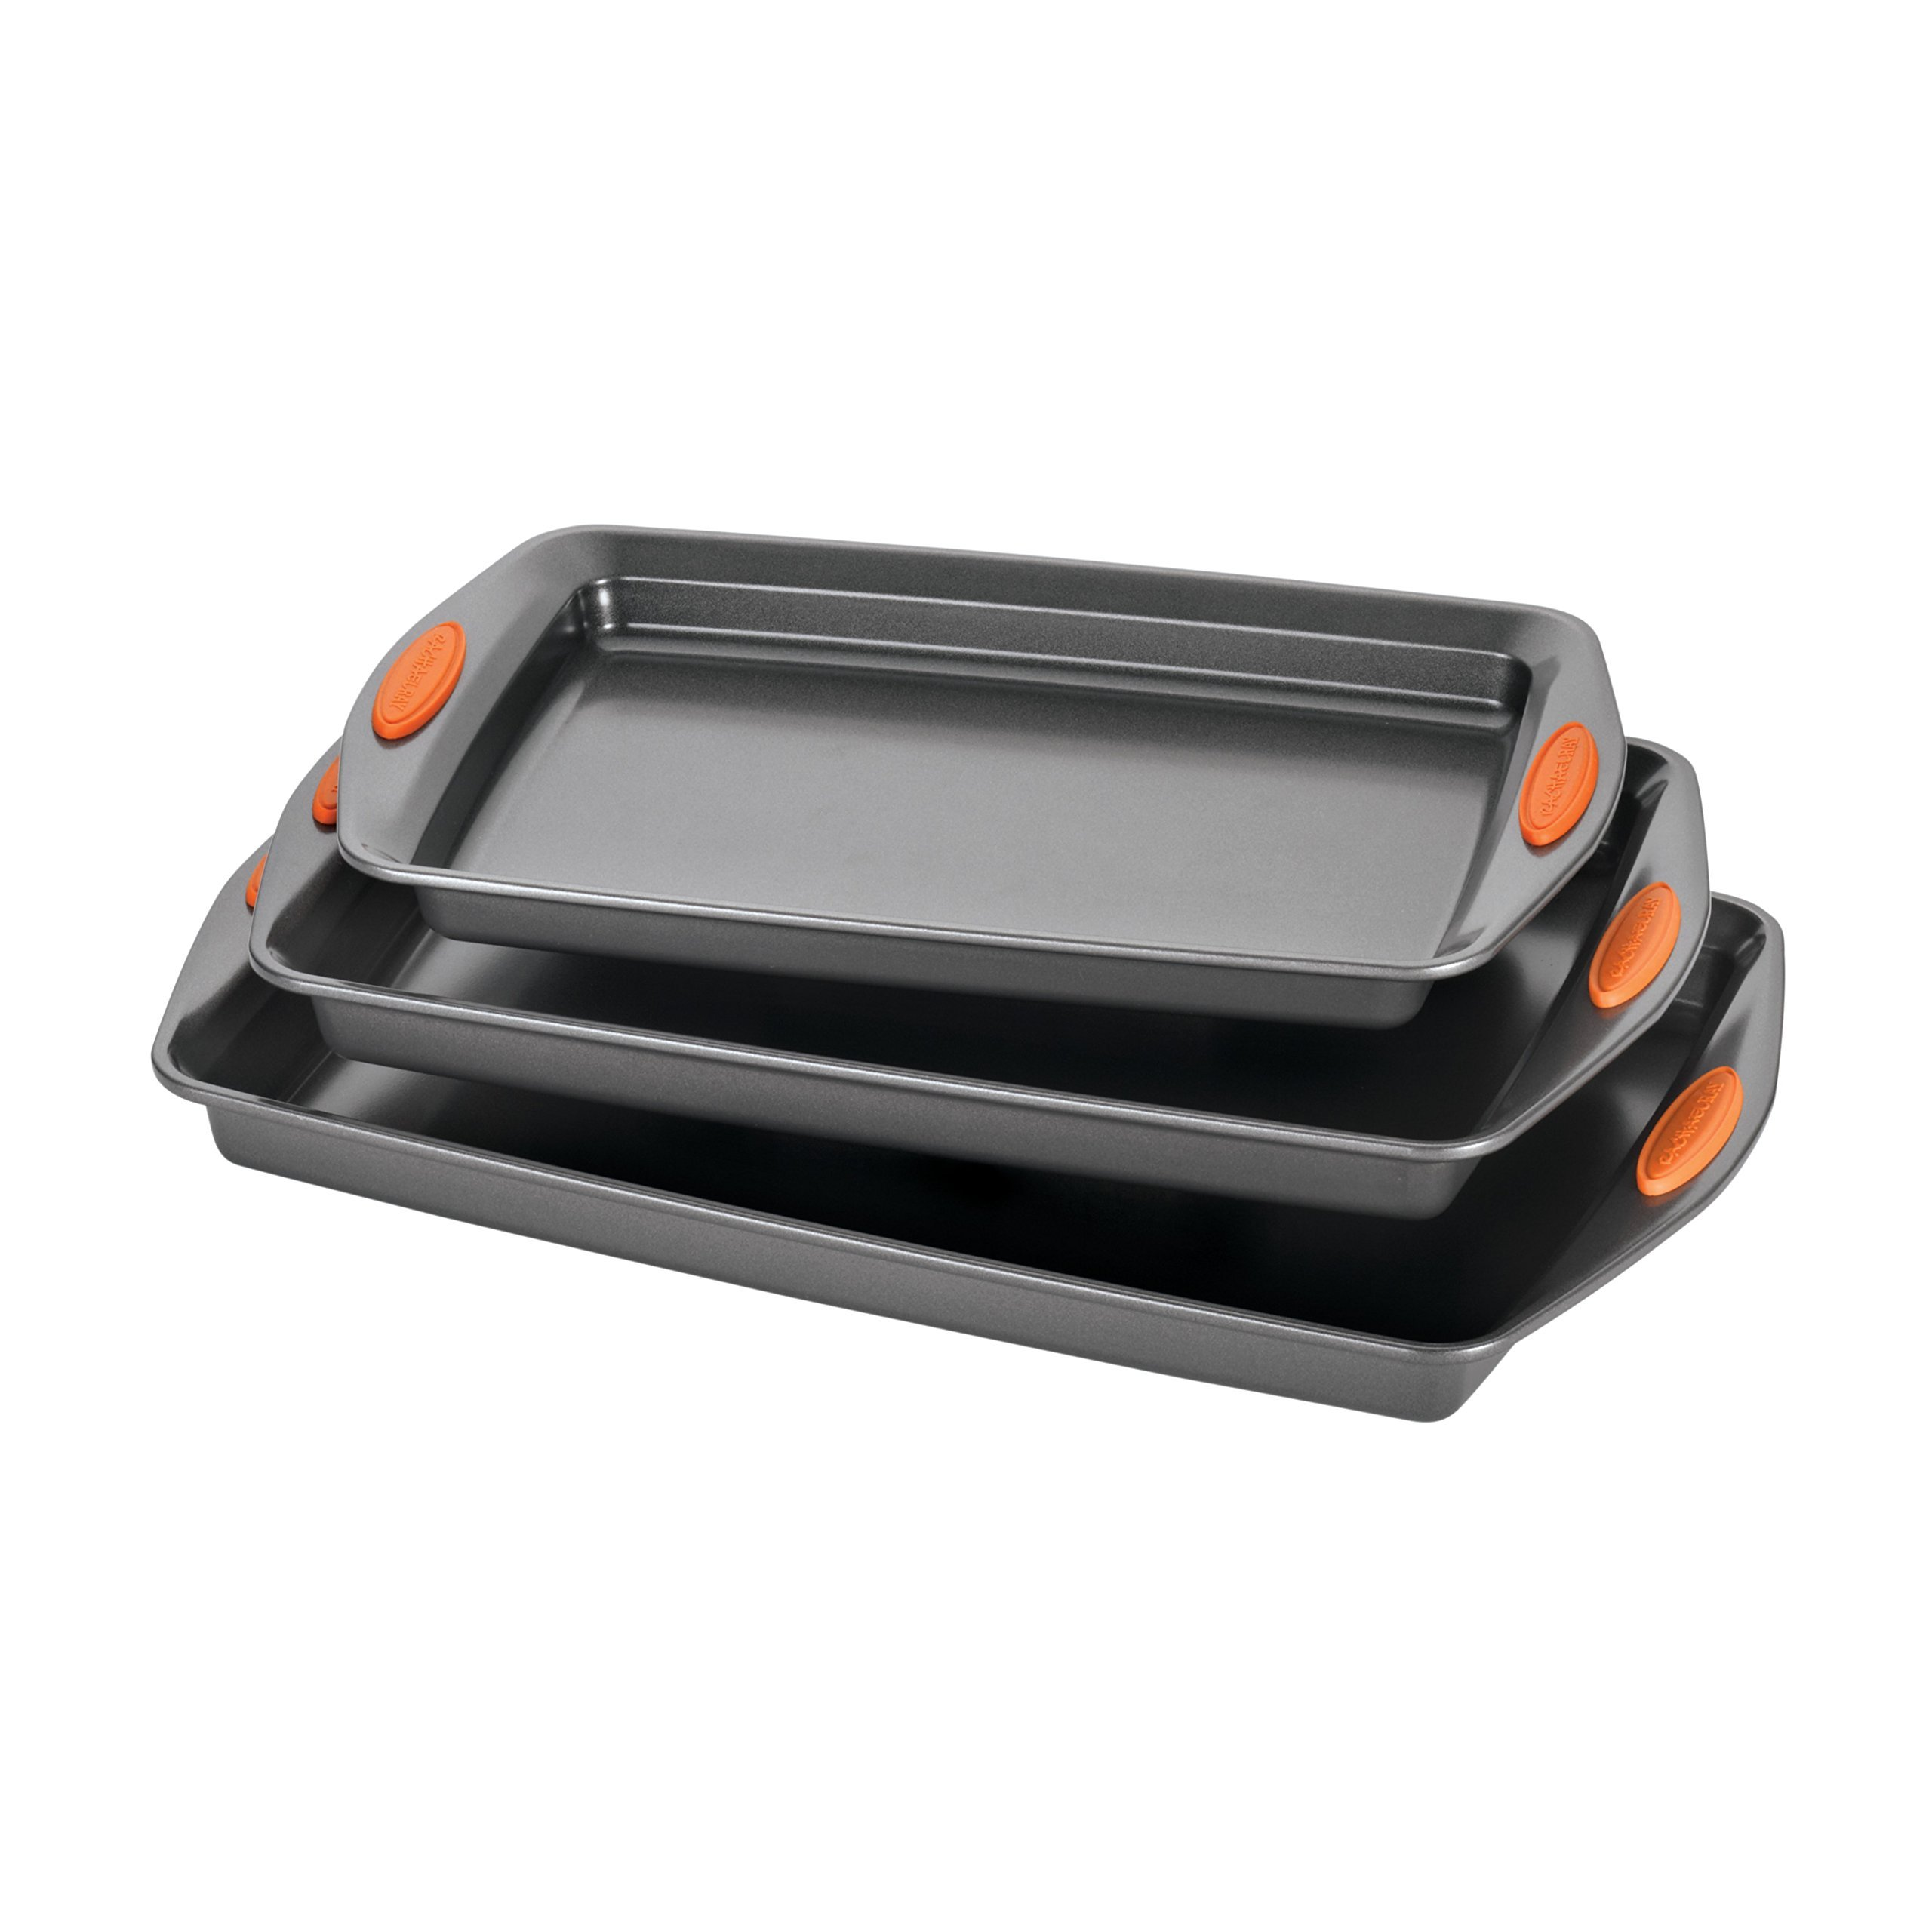 Rachael Ray Yum-o! Nonstick Bakeware 3-Piece Oven Lovin' Cookie Pan Set, Gray with Orange Silicone Grips by Rachael Ray (Image #1)